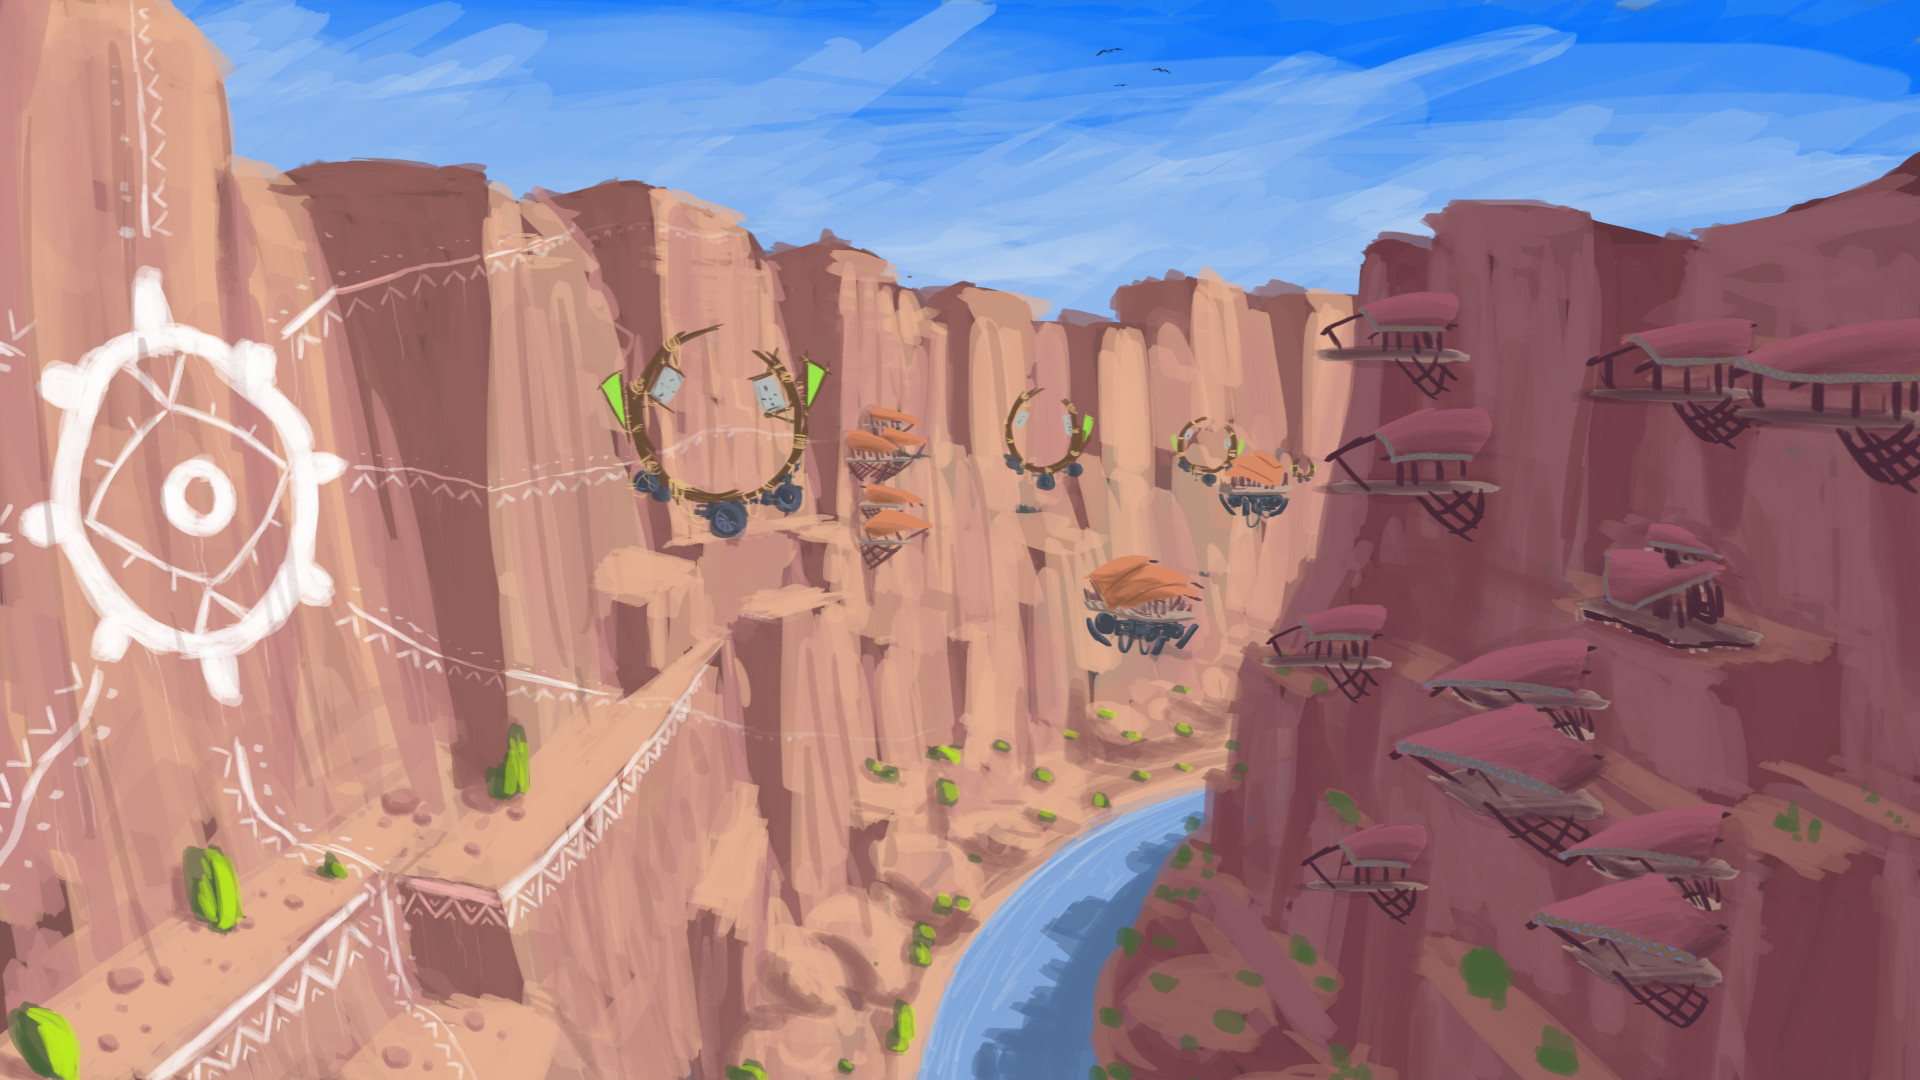 First iteration on rendered out image from the canyons and the placement of the murals